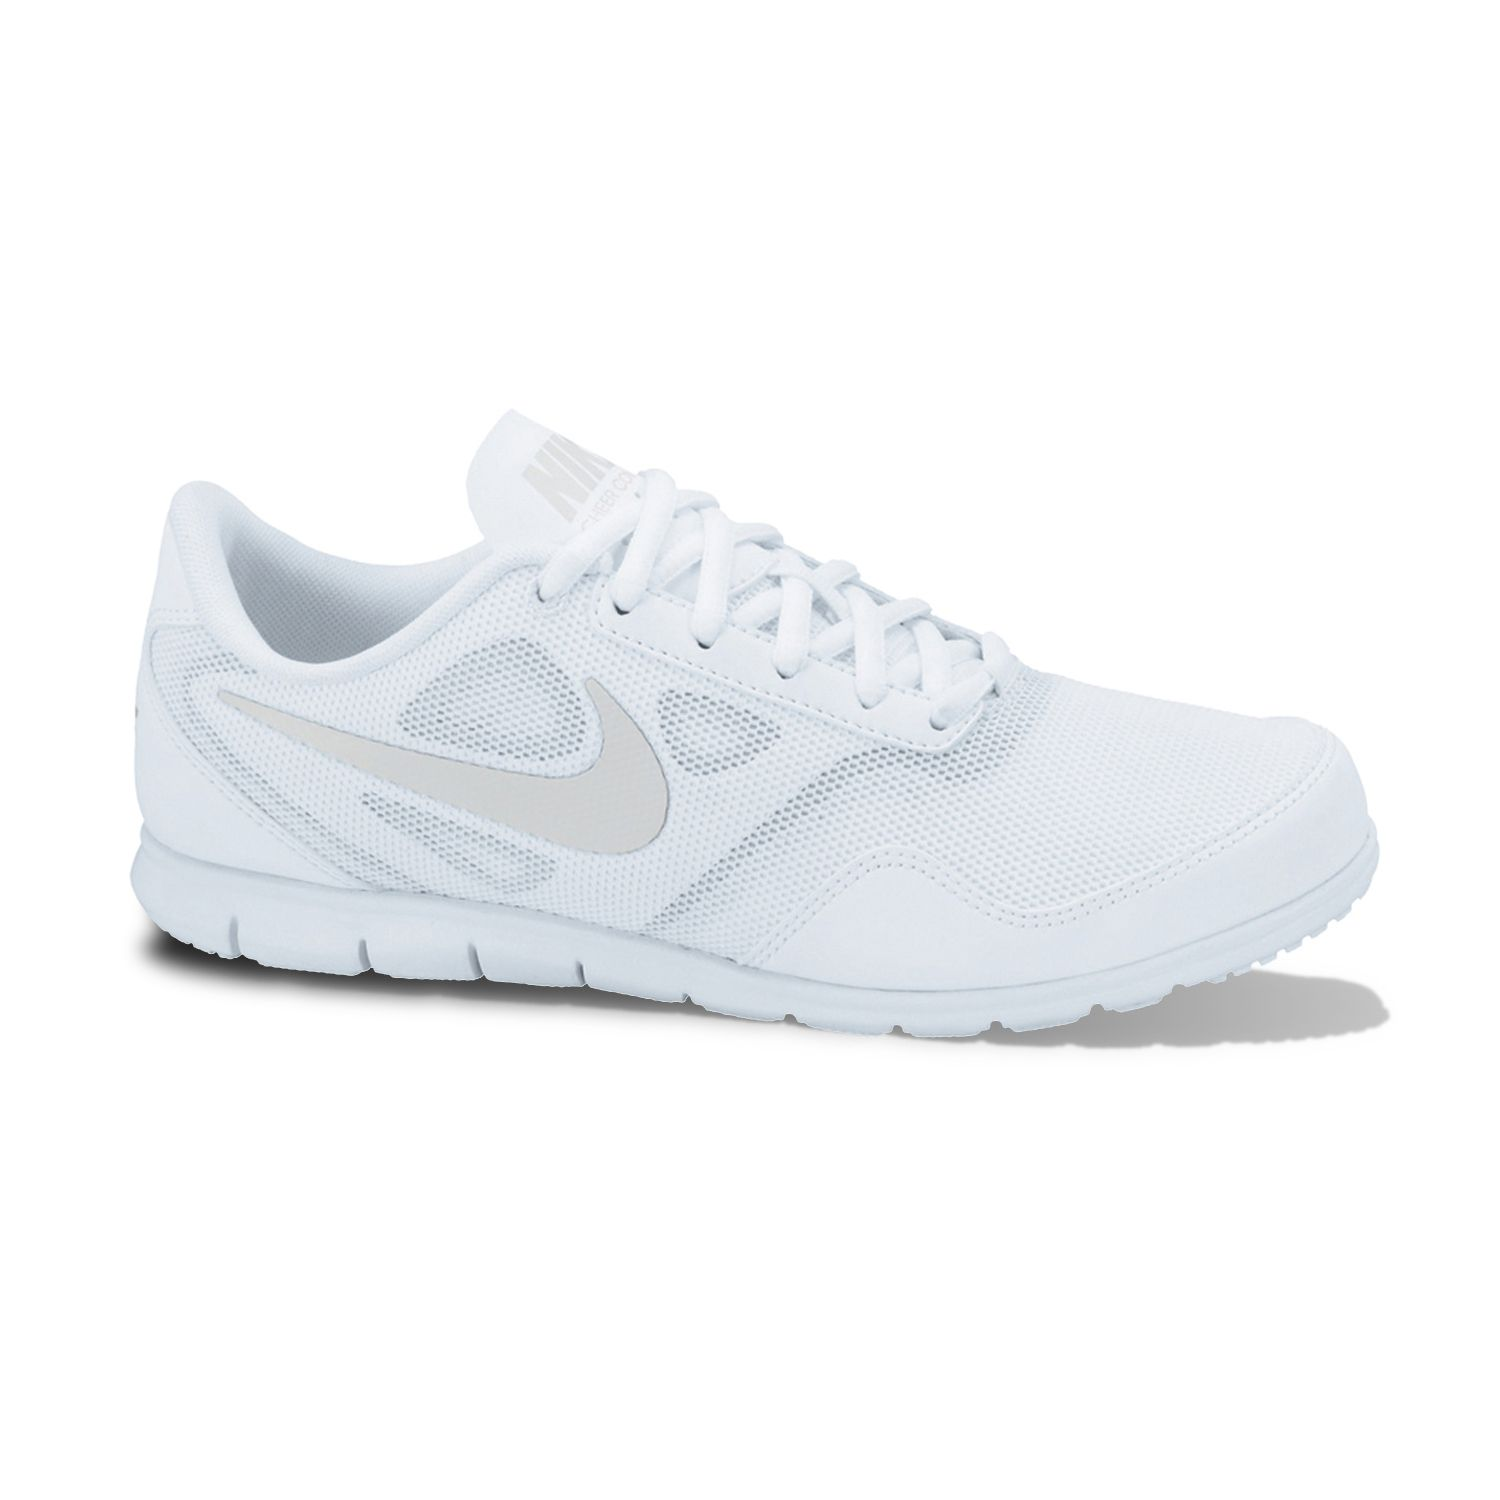 Nike White Cheer Compete High-Performance Cheer Shoes - Women